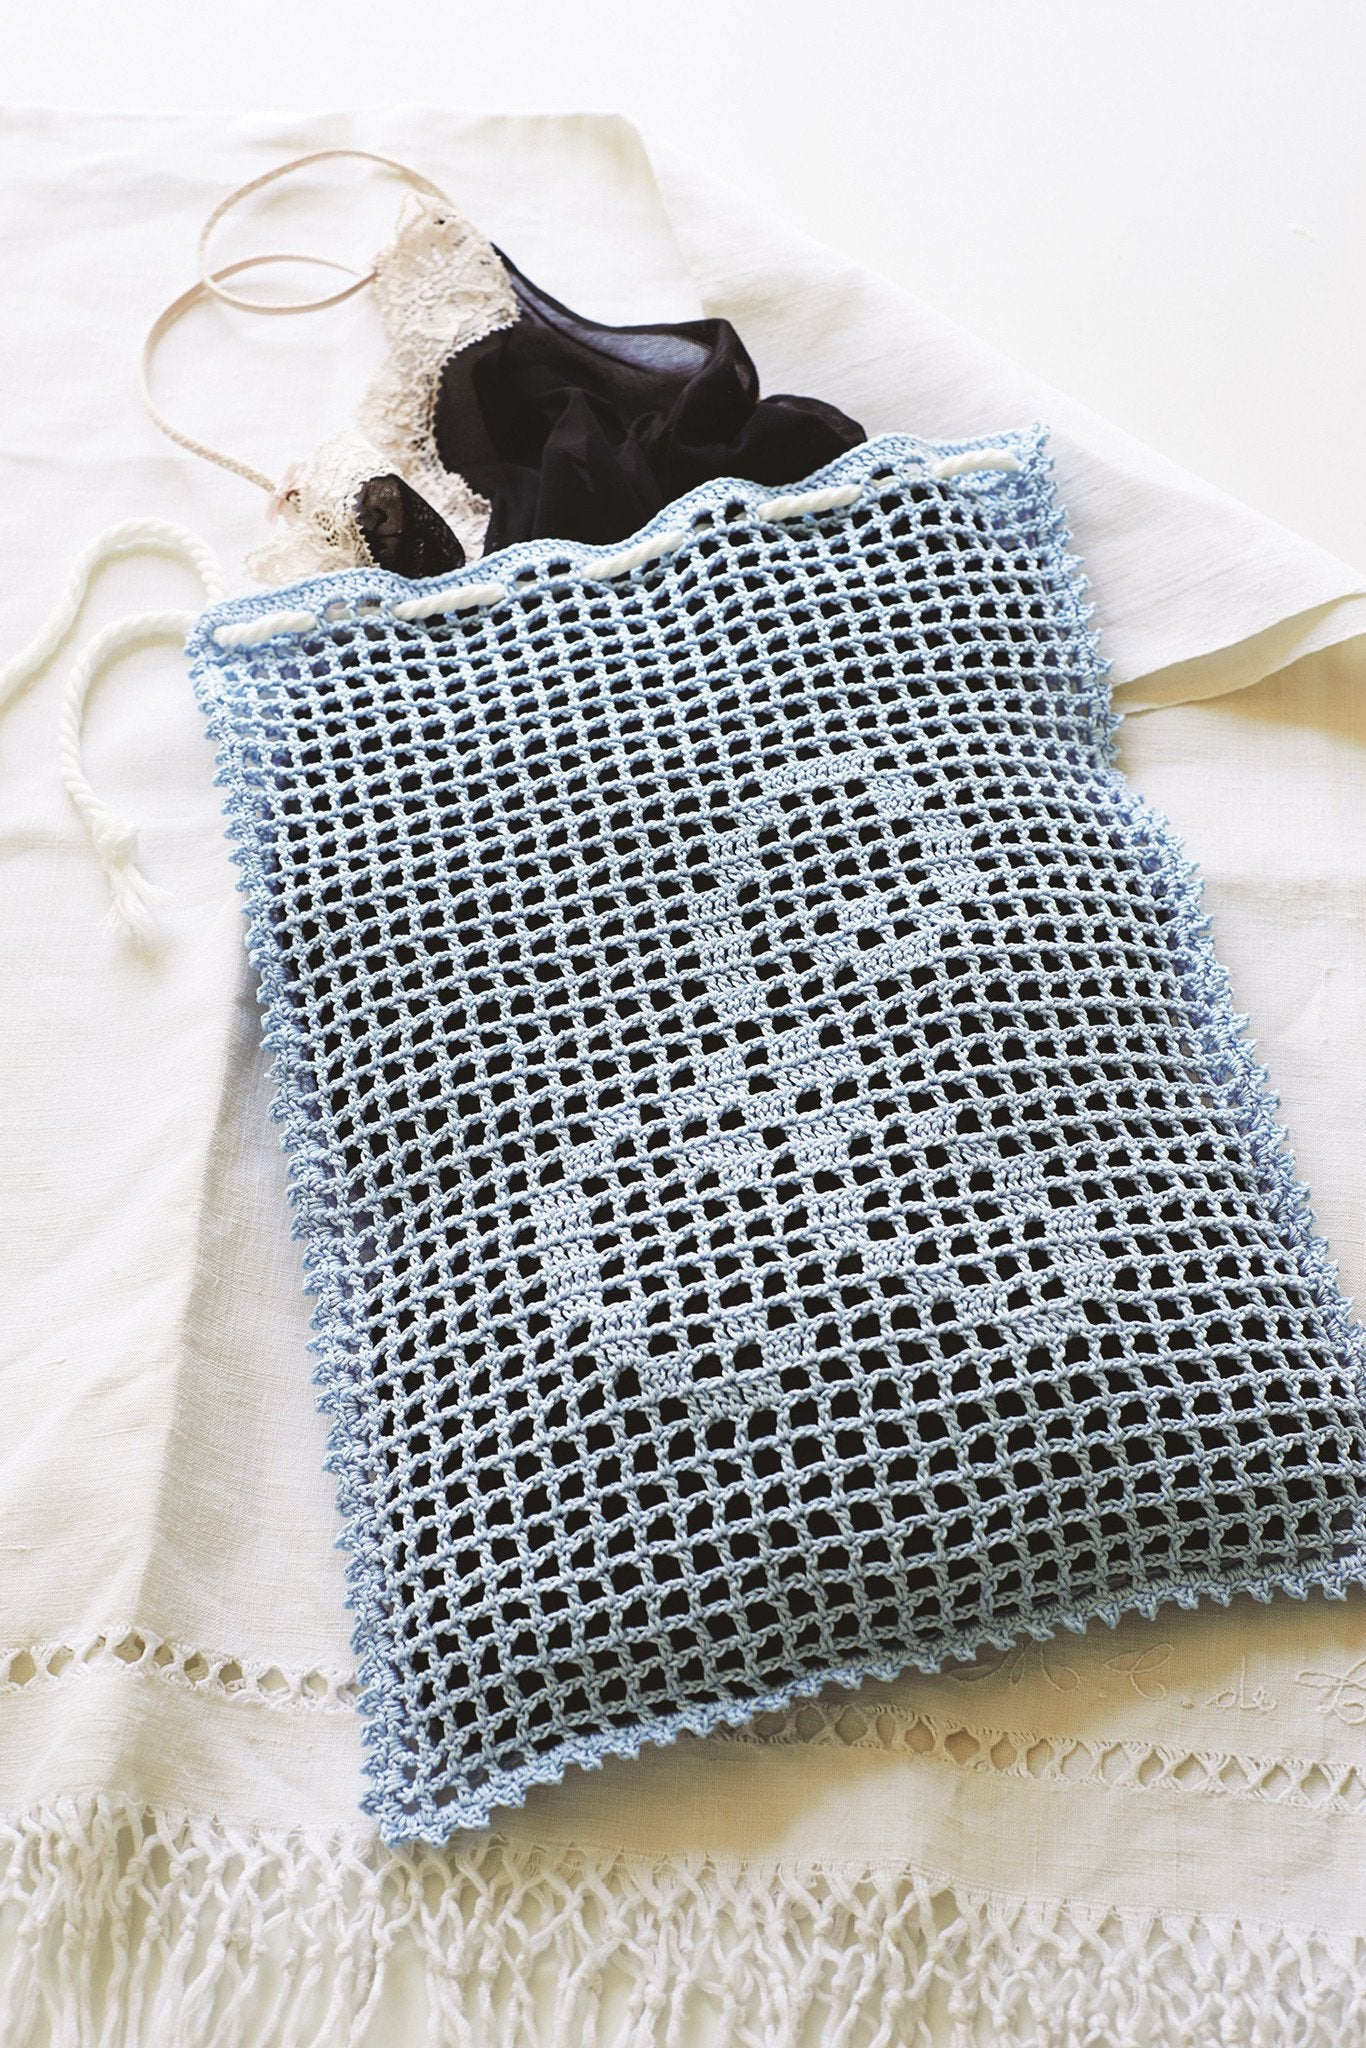 Laundry bag crochet pattern the knitting network laundry bag crochet pattern bankloansurffo Choice Image